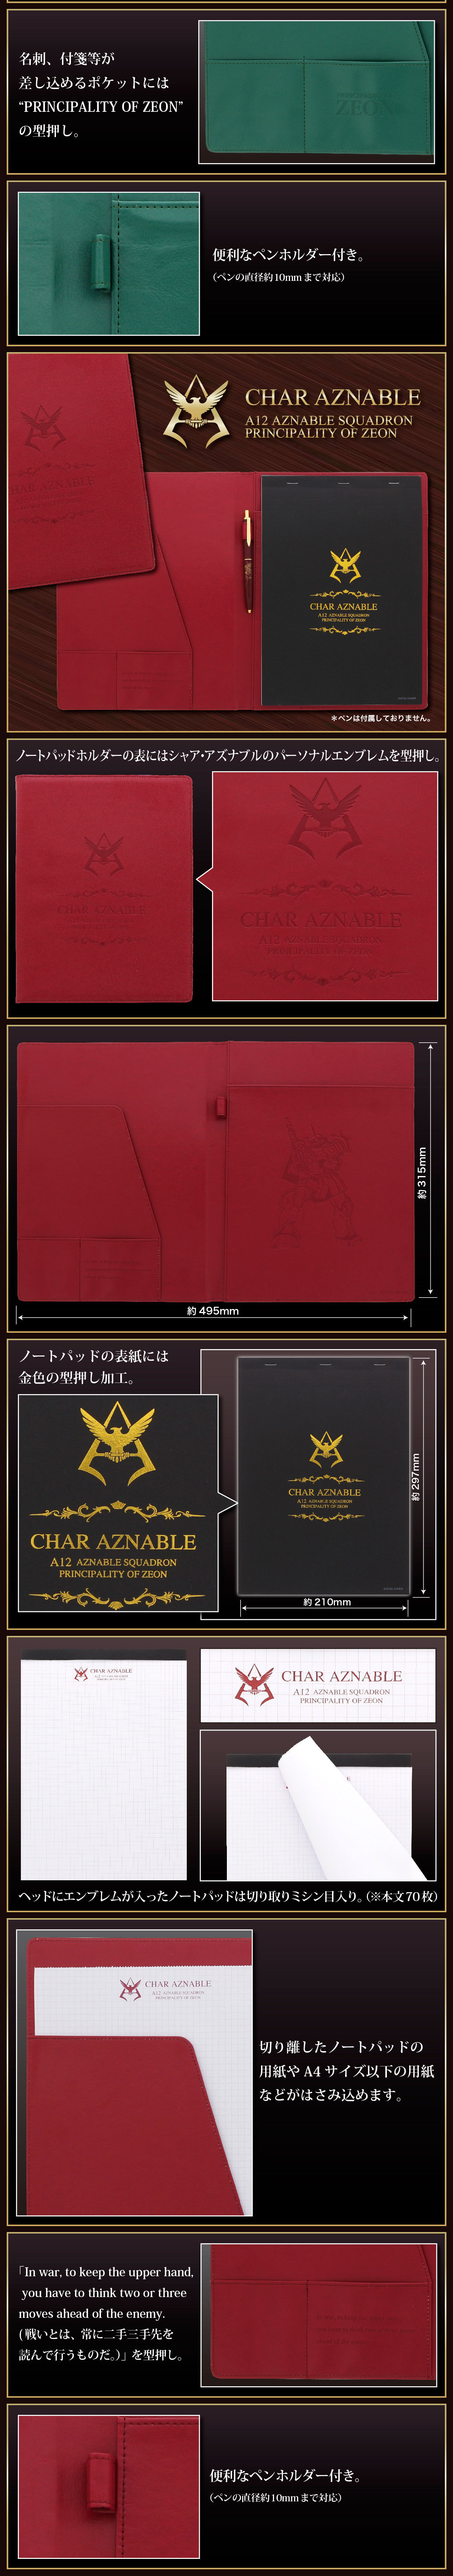 MOBILE SUIT GUNDAM A4 NOTEPAD + NOTEPAD HOLDER SET [CHAR AZNABLE]